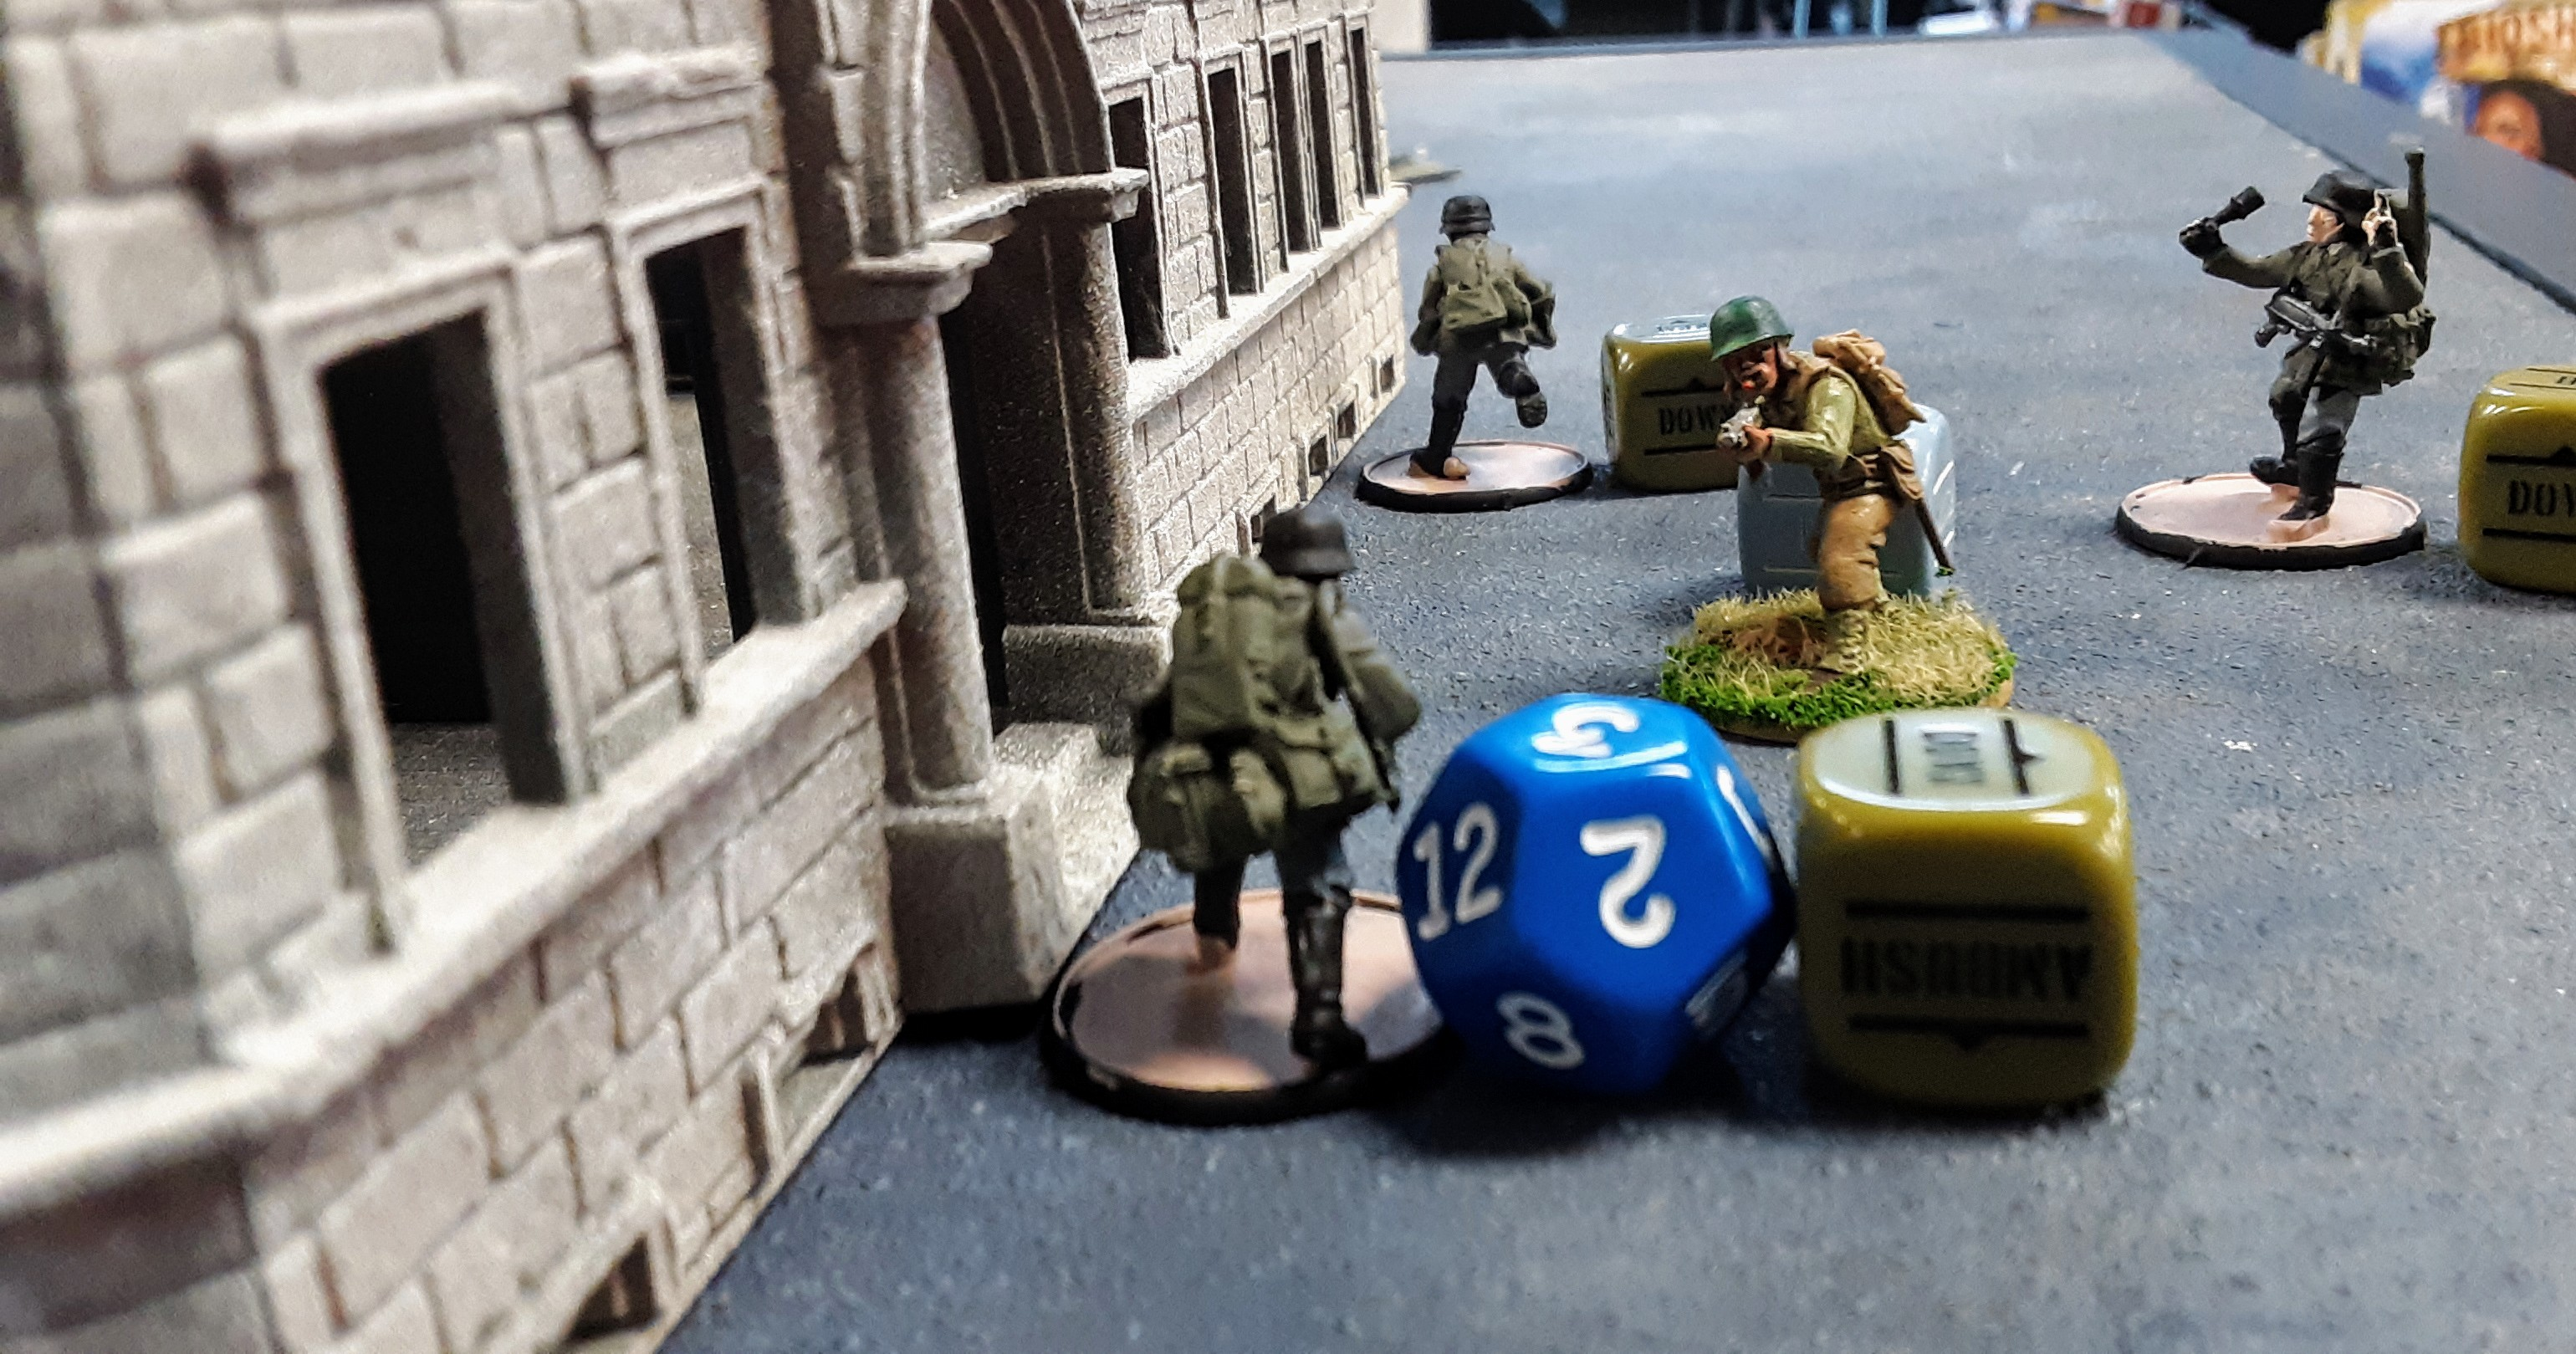 289th Infantry Regiment versus 352nd Pionier Battalion in a fierce infantry engagement